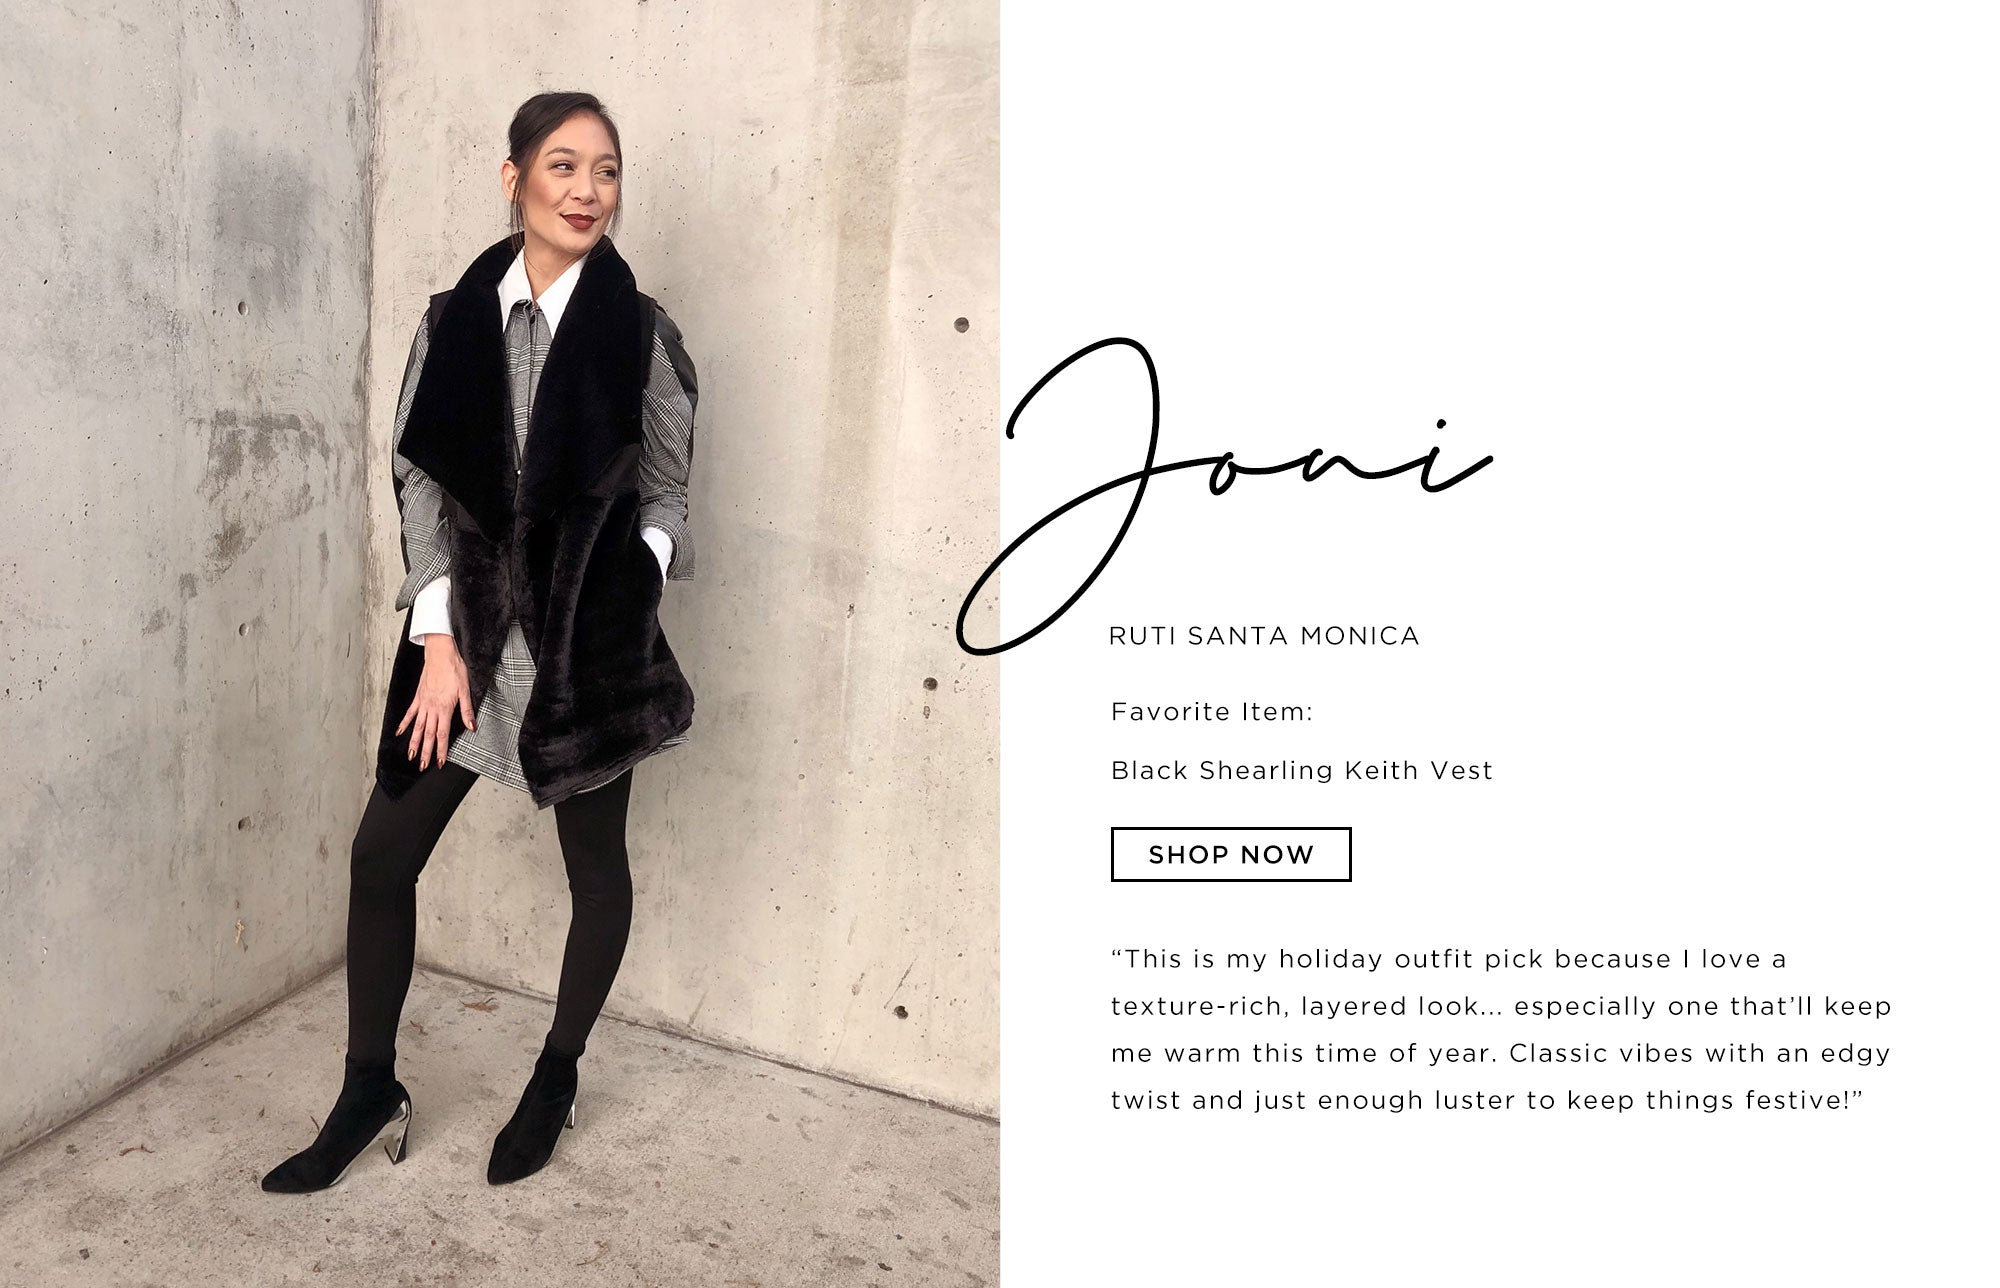 Joni Ruti Santa Monica   This is my holiday outfit pick because I love a texture-rich, layered look... especially one that'll keep me warm this time of year. Classic vibes with an edgy twist and just enough luster to keep things festive!